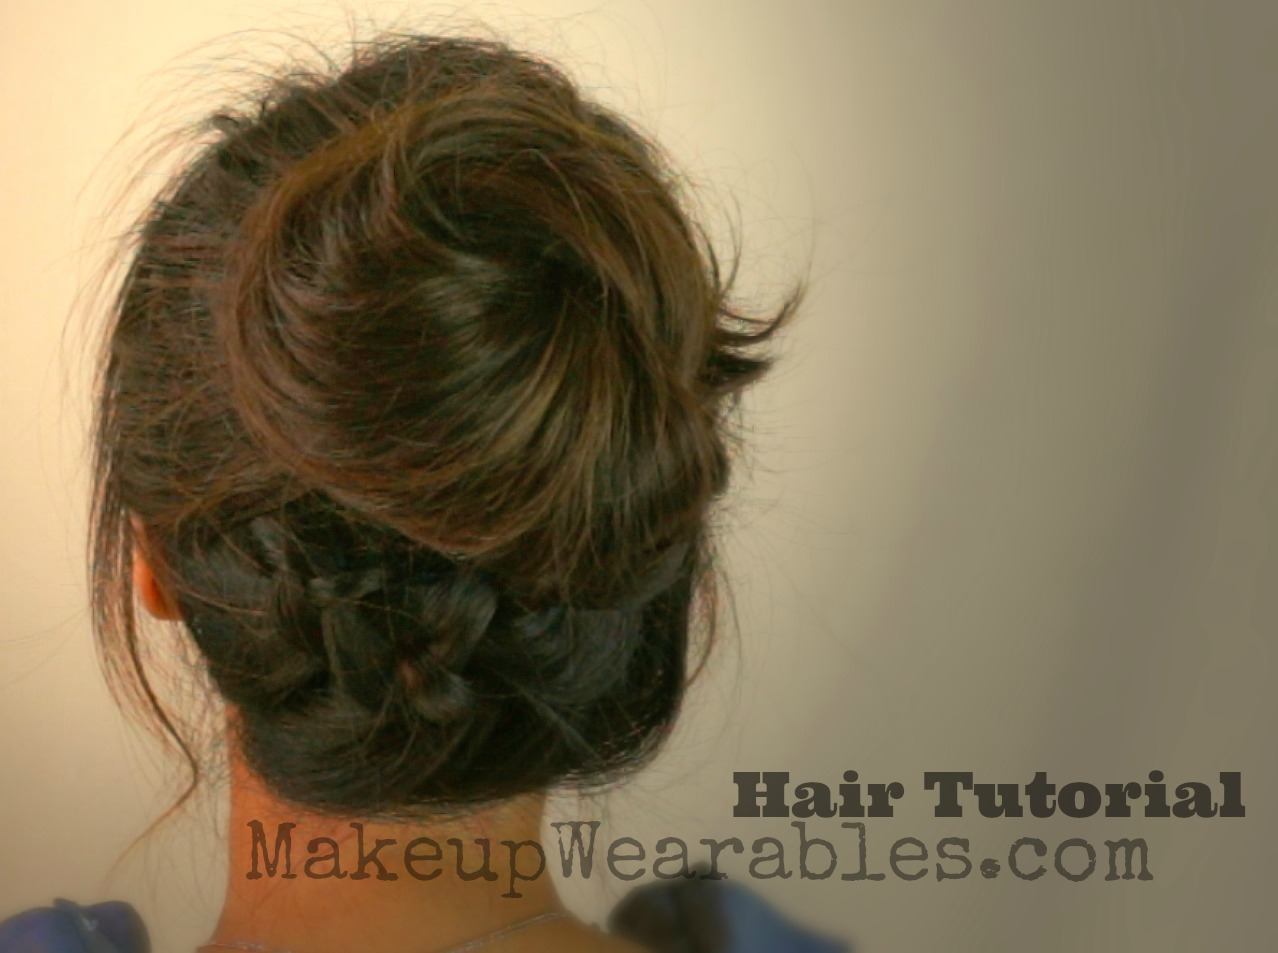 learn 3 cute, everyday casual hairstyles updos | hair tutorial videos